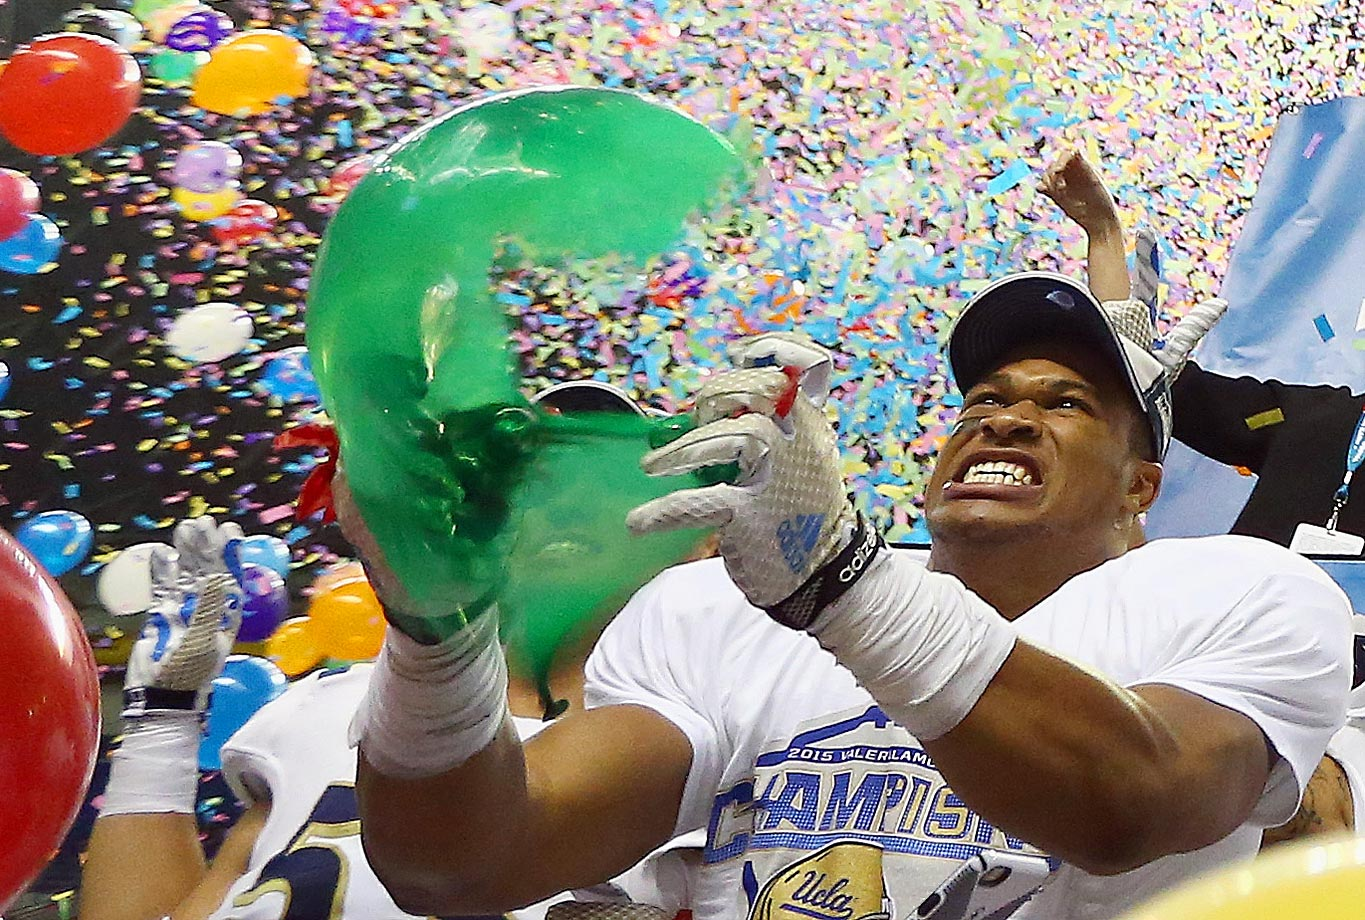 Kenny Young of UCLA pops a balloon after their 40-35 win against Kansas State in the Valero Alamo Bowl.